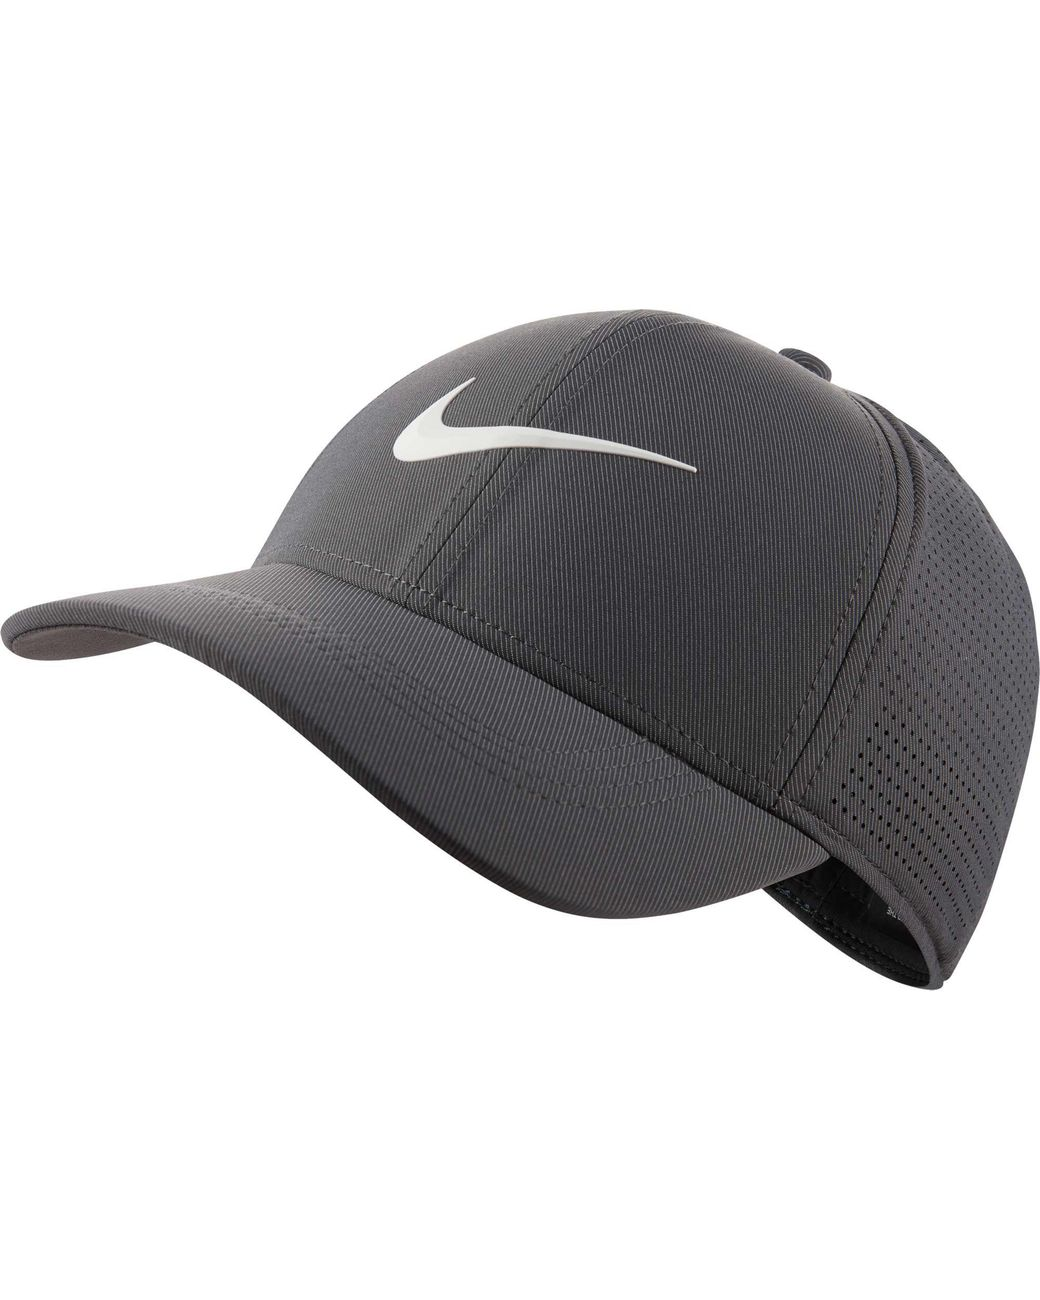 f779fd03fc4eb Nike 2018 Aerobill Legacy91 Perforated Golf Hat in Gray for Men - Lyst